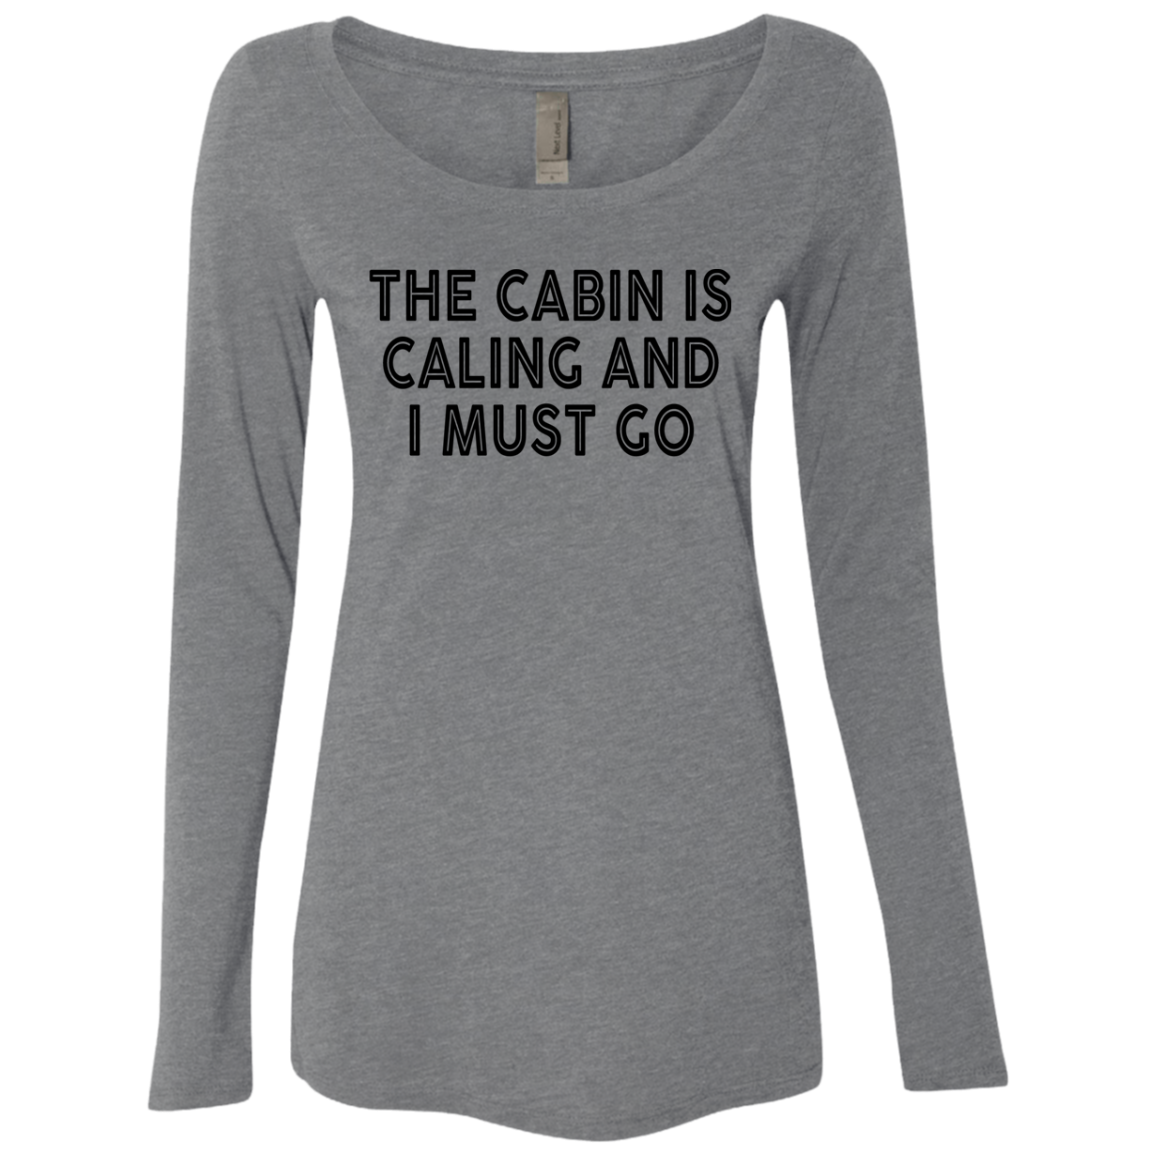 The Cabin Is Calling And I Must Go Women's Long Sleeve Tee